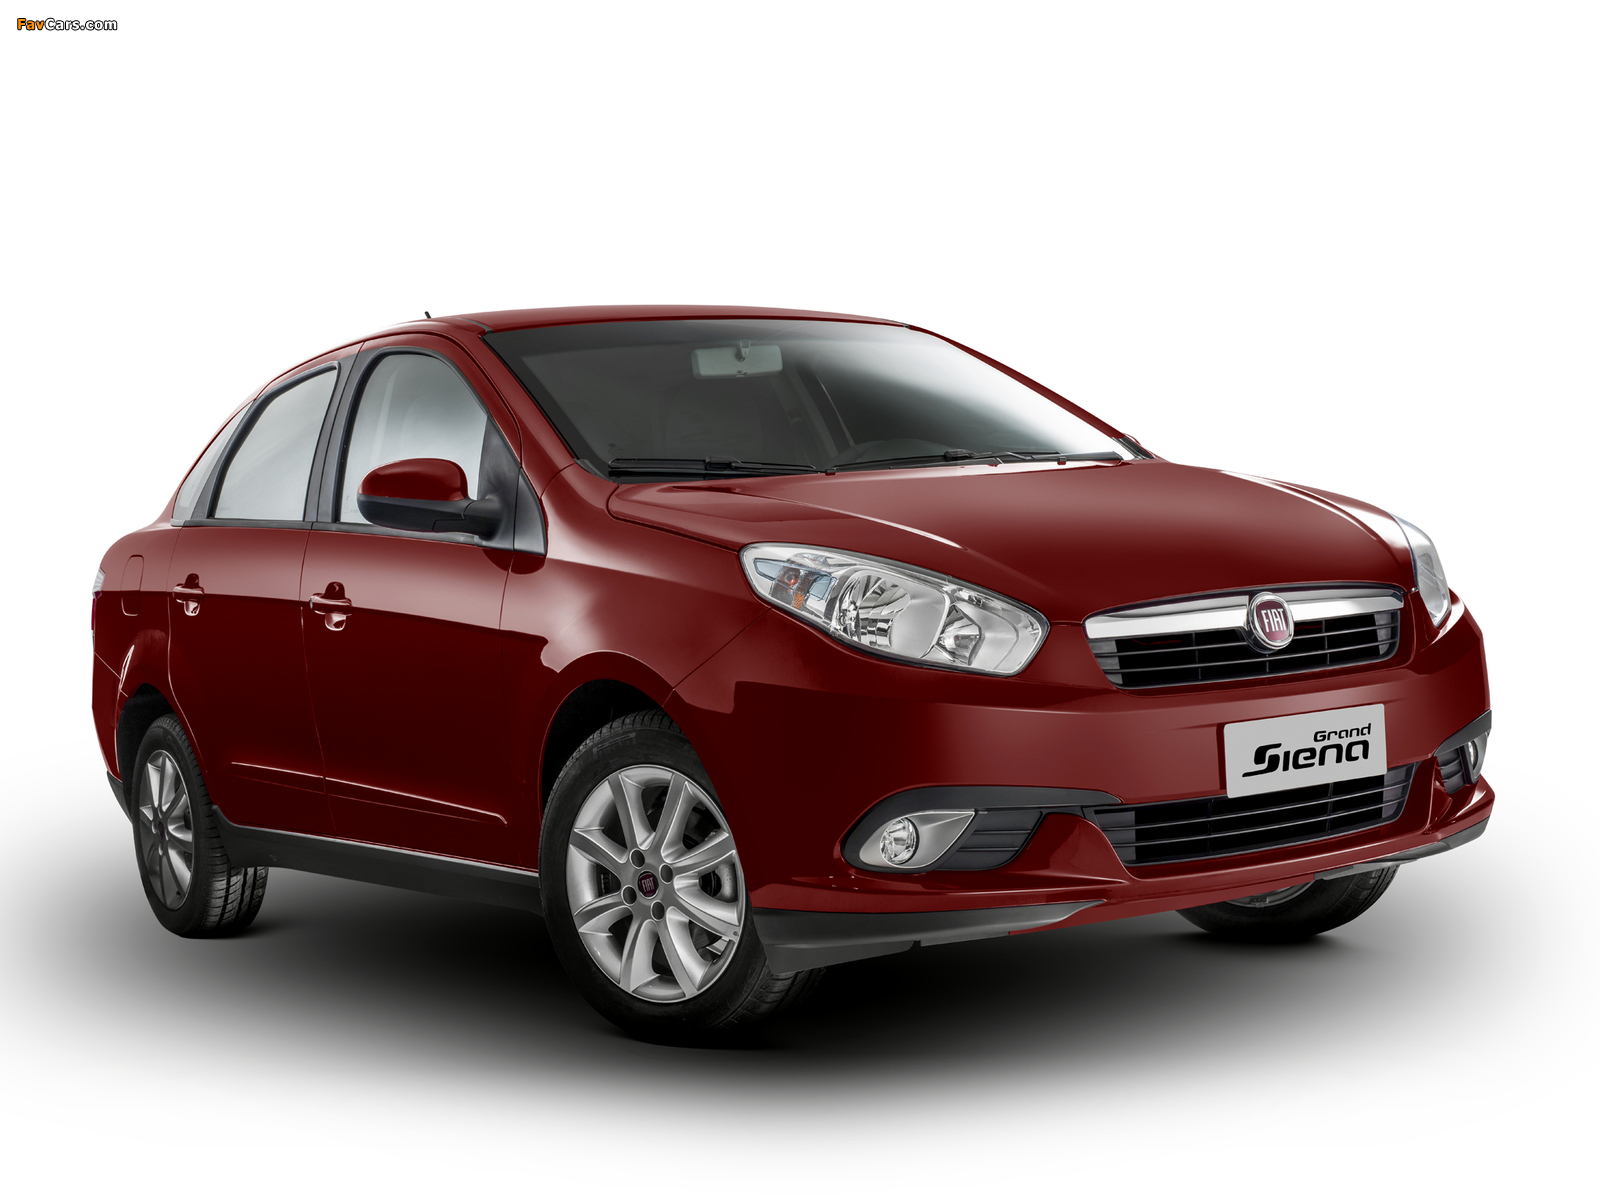 Pictures of Fiat Grand Siena Attractive (326) 2012 (1600 x 1200)